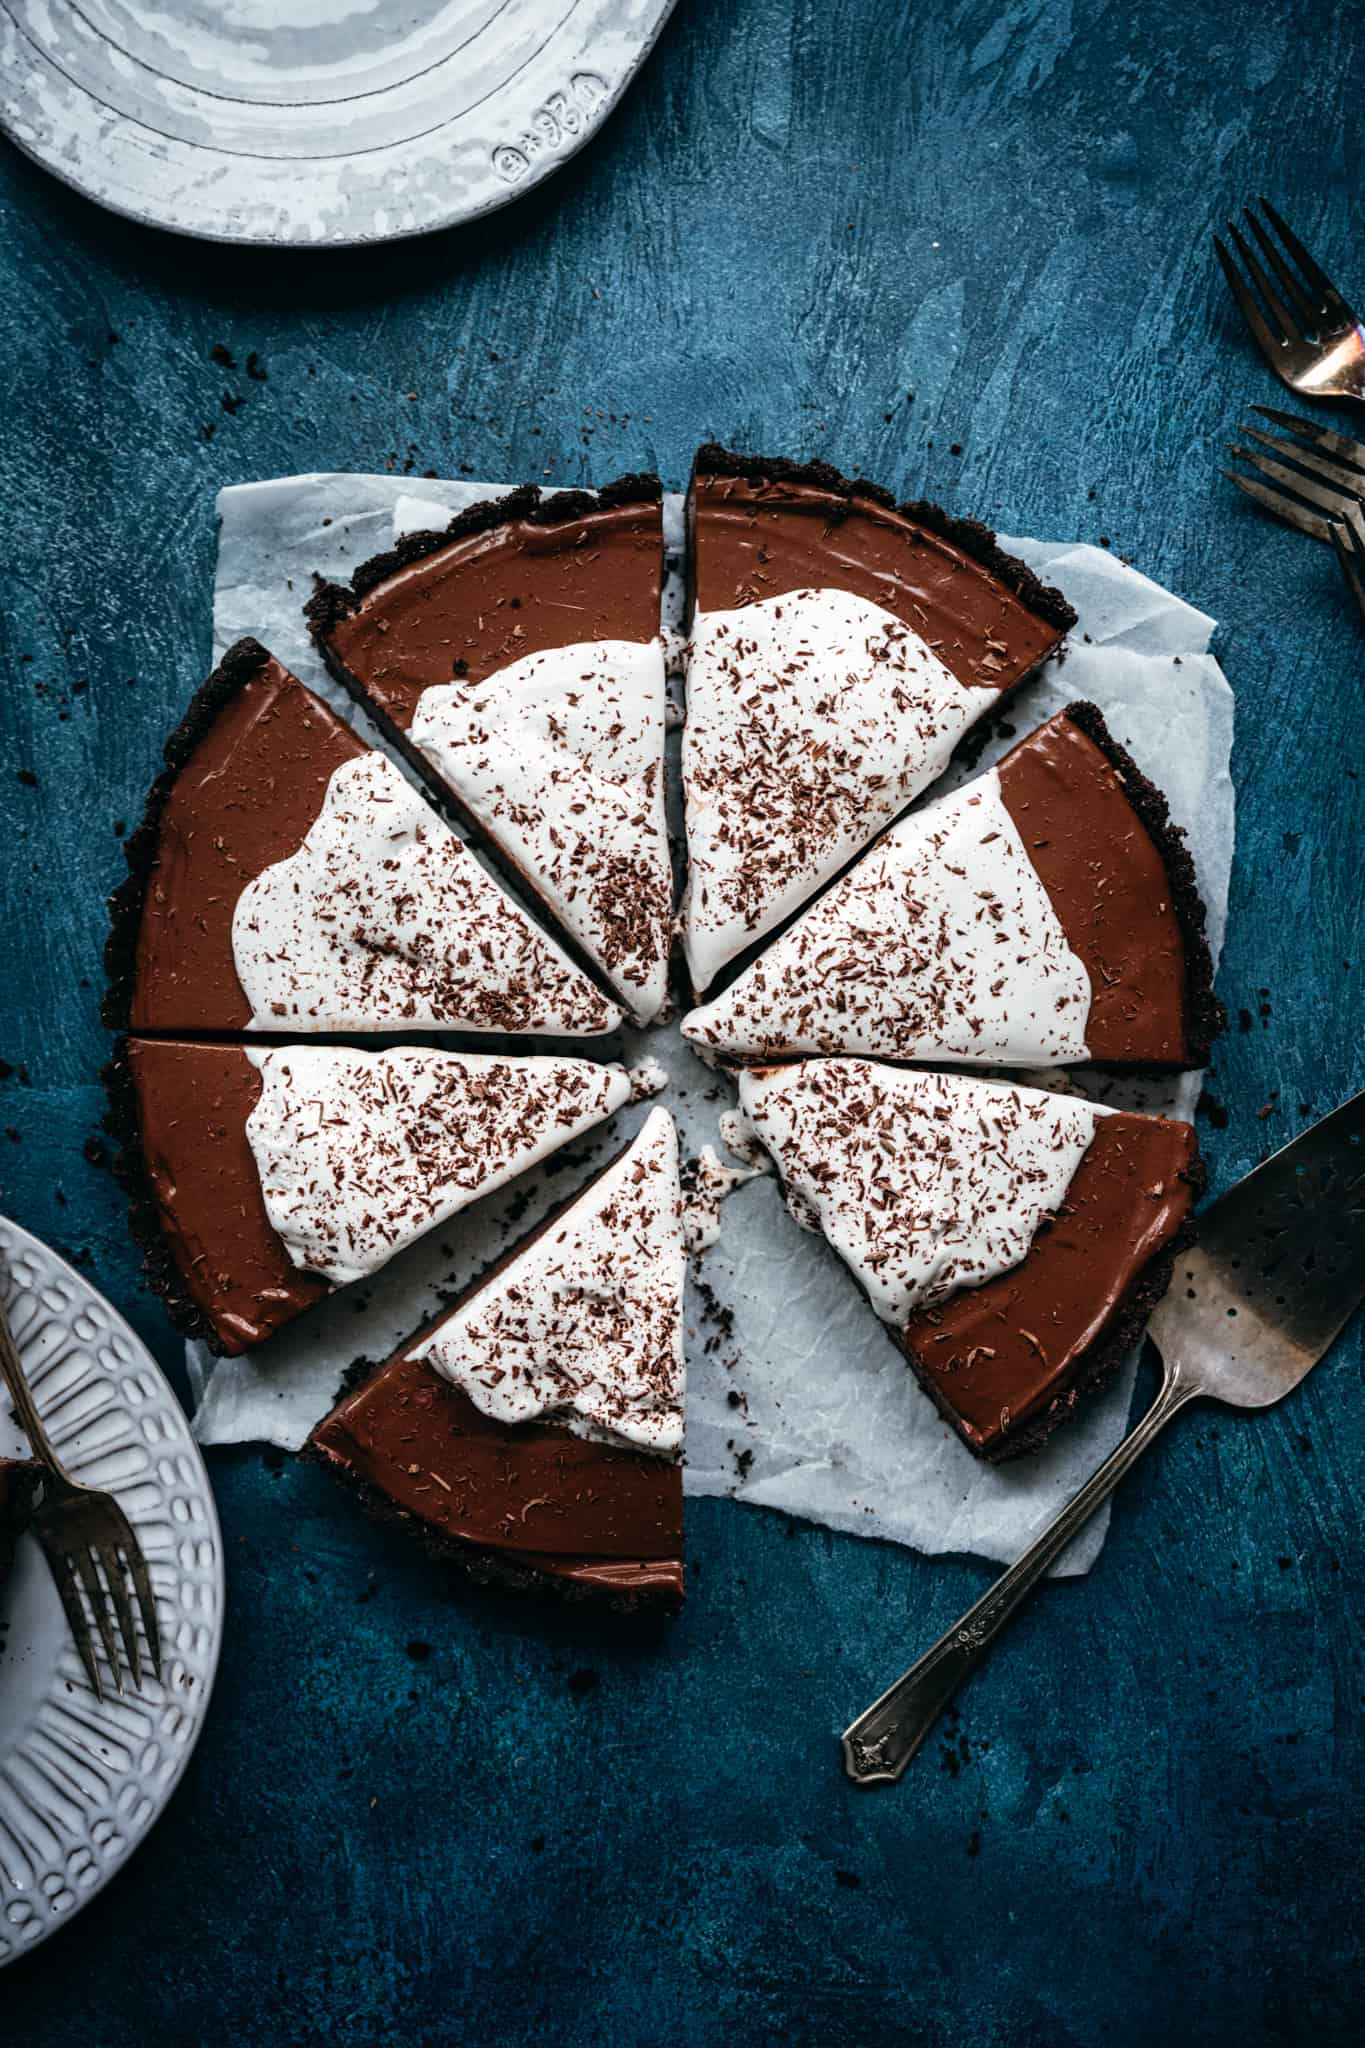 overhead view of vegan chocolate pie with whipped cream sliced into pieces